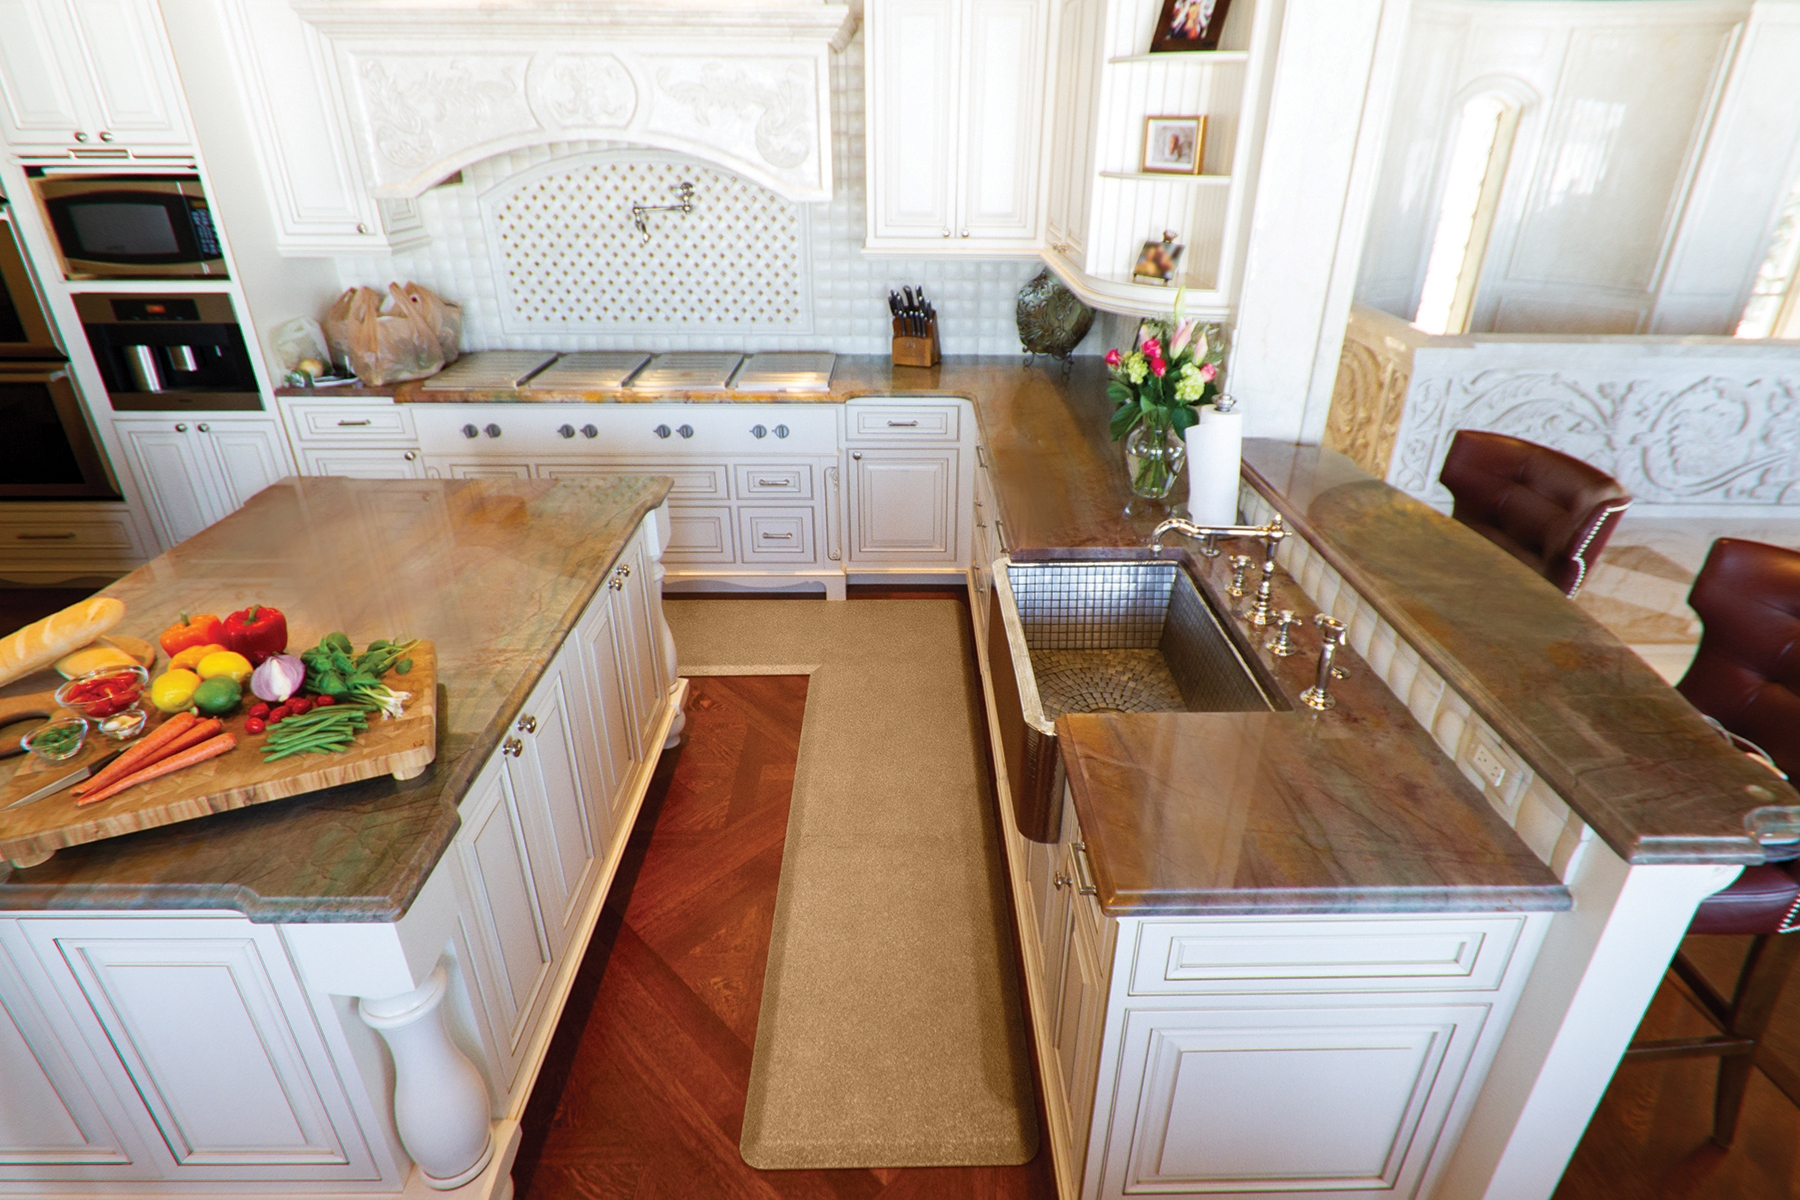 Granite Gold EcoLast L-Shaped Puzzle Piece Mat in the kitchen